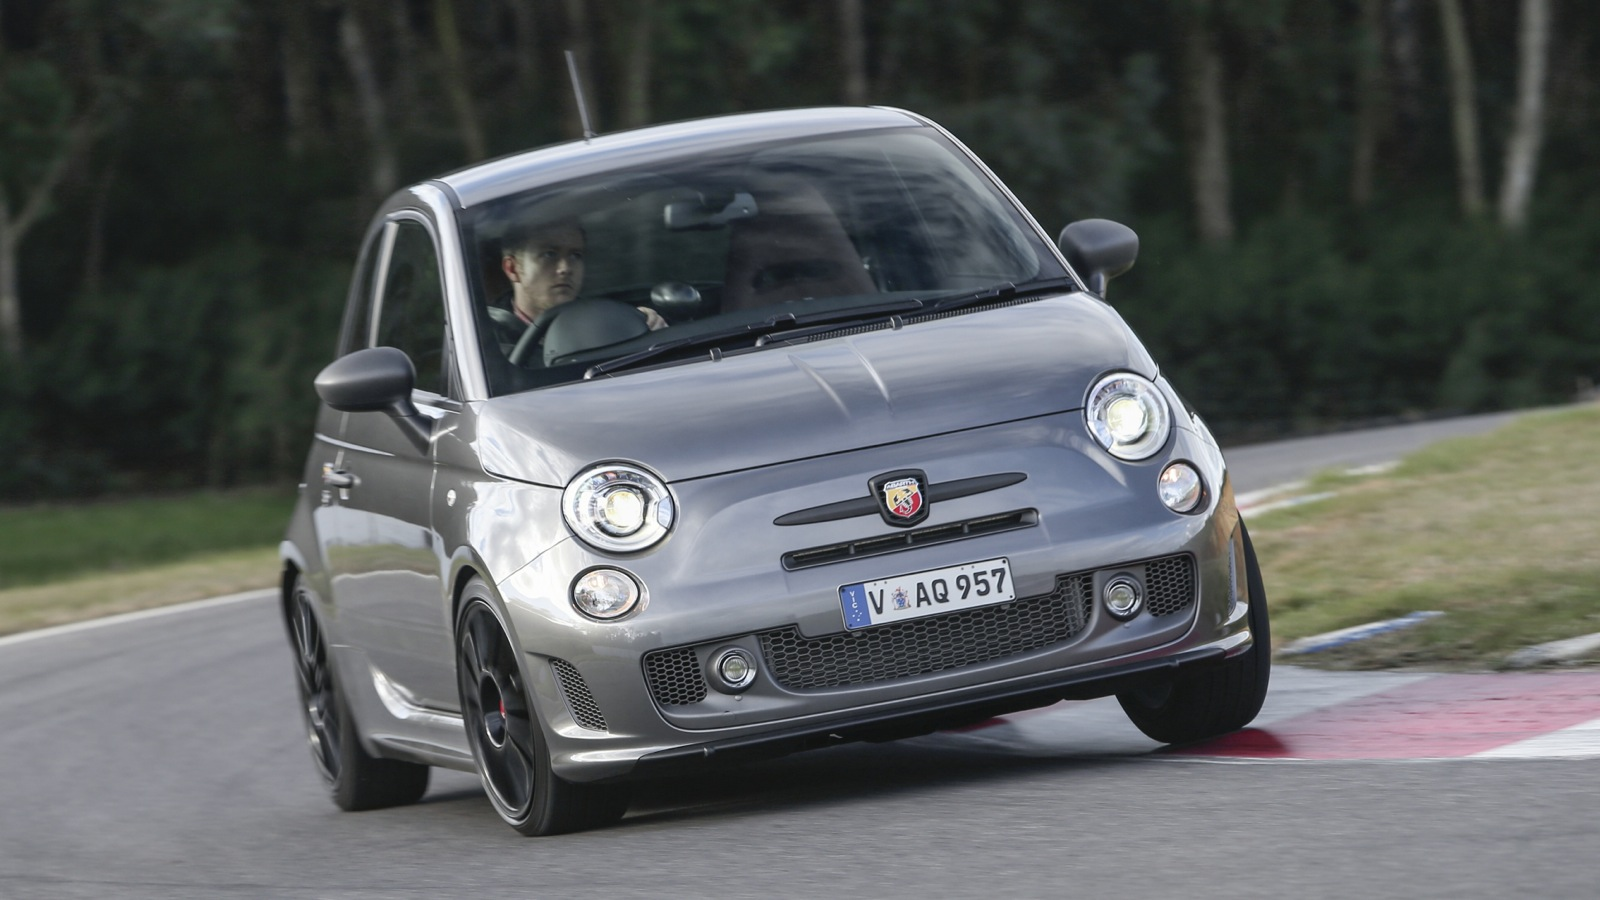 2015 Fiat Abarth 595: Pricing and specifications - photos ...